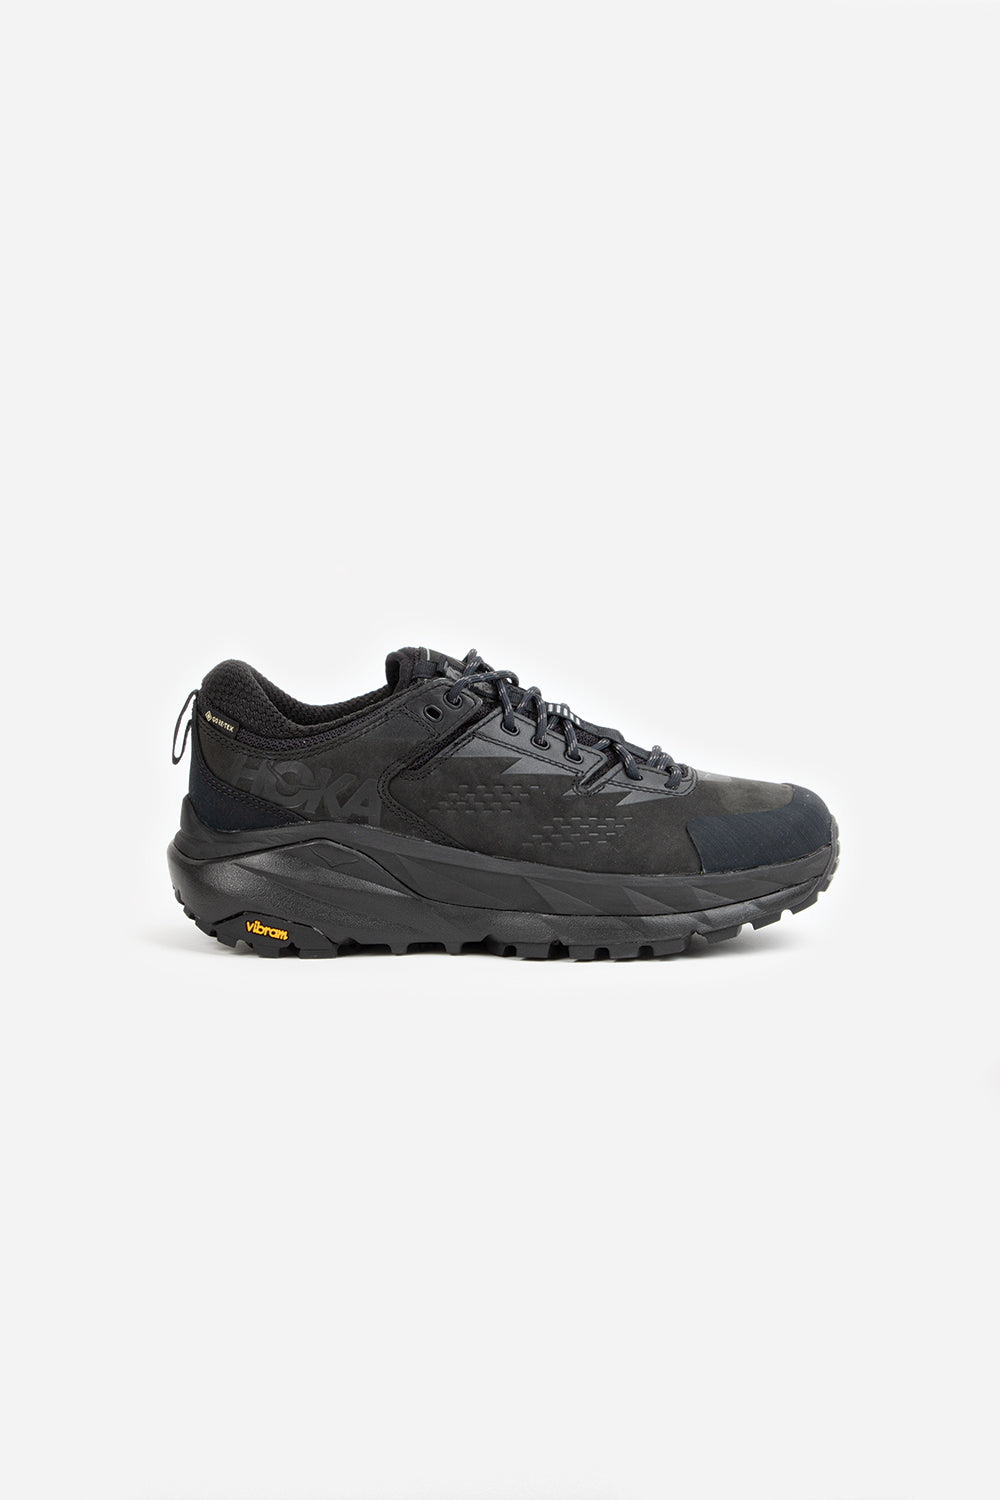 hoka-one-one-kaha-gore-tex-low-black